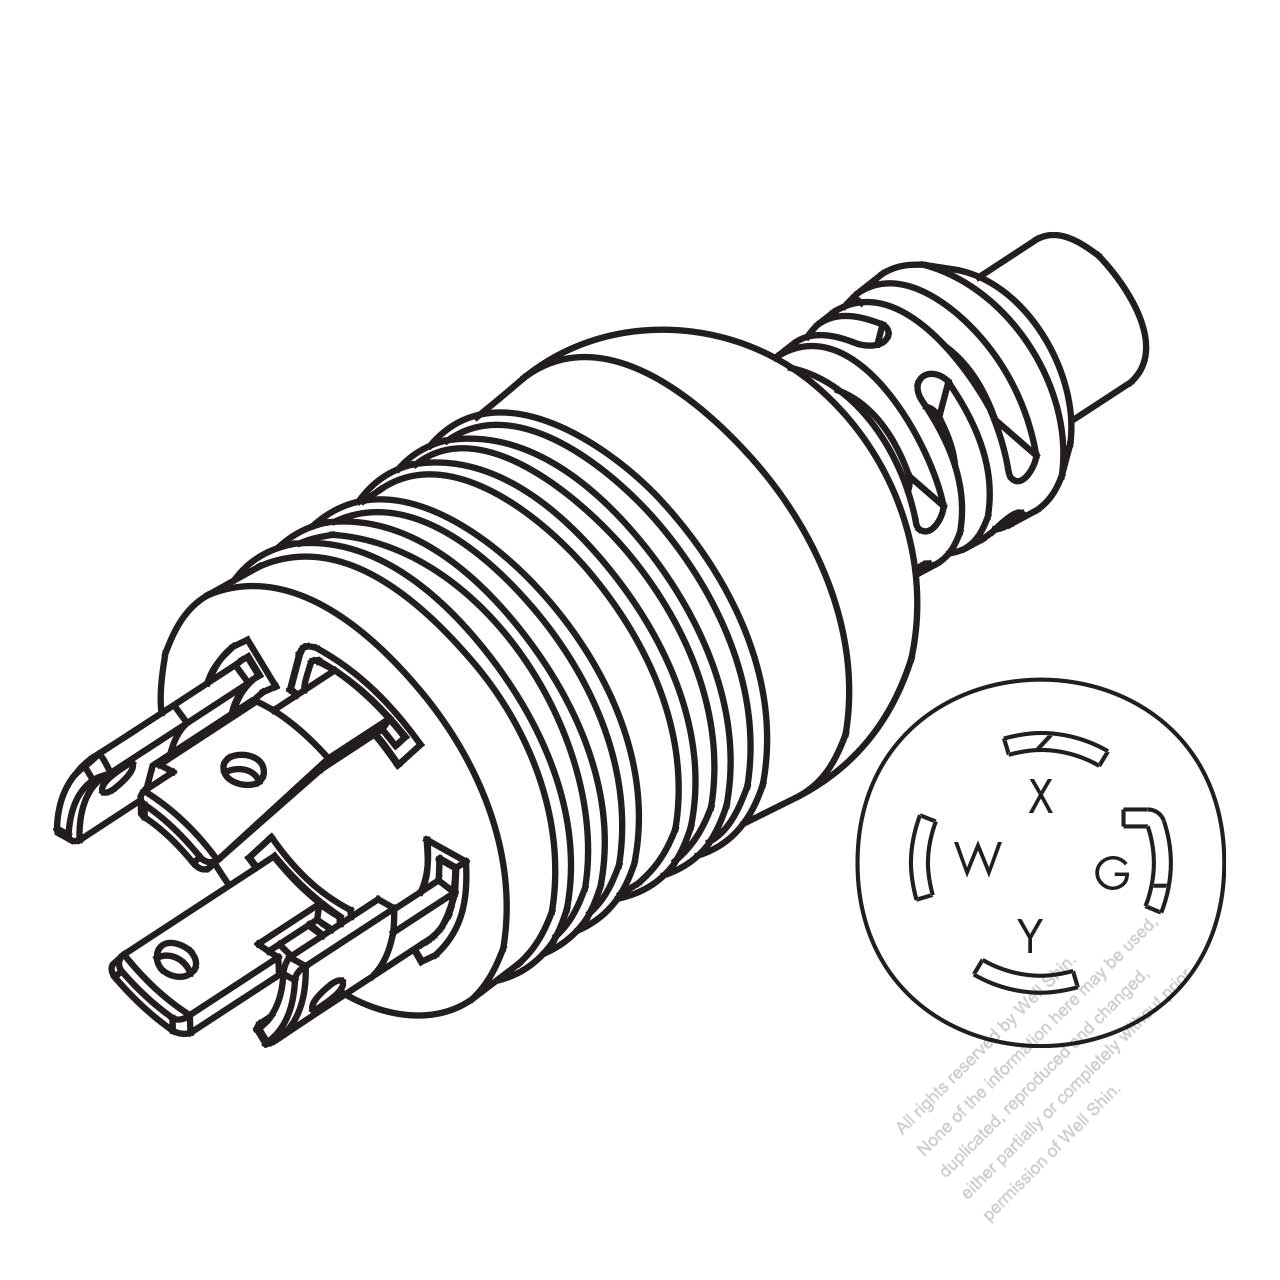 Nema L6 Wiring Diagram.Hubbell Twist Lock Wiring Diagram V